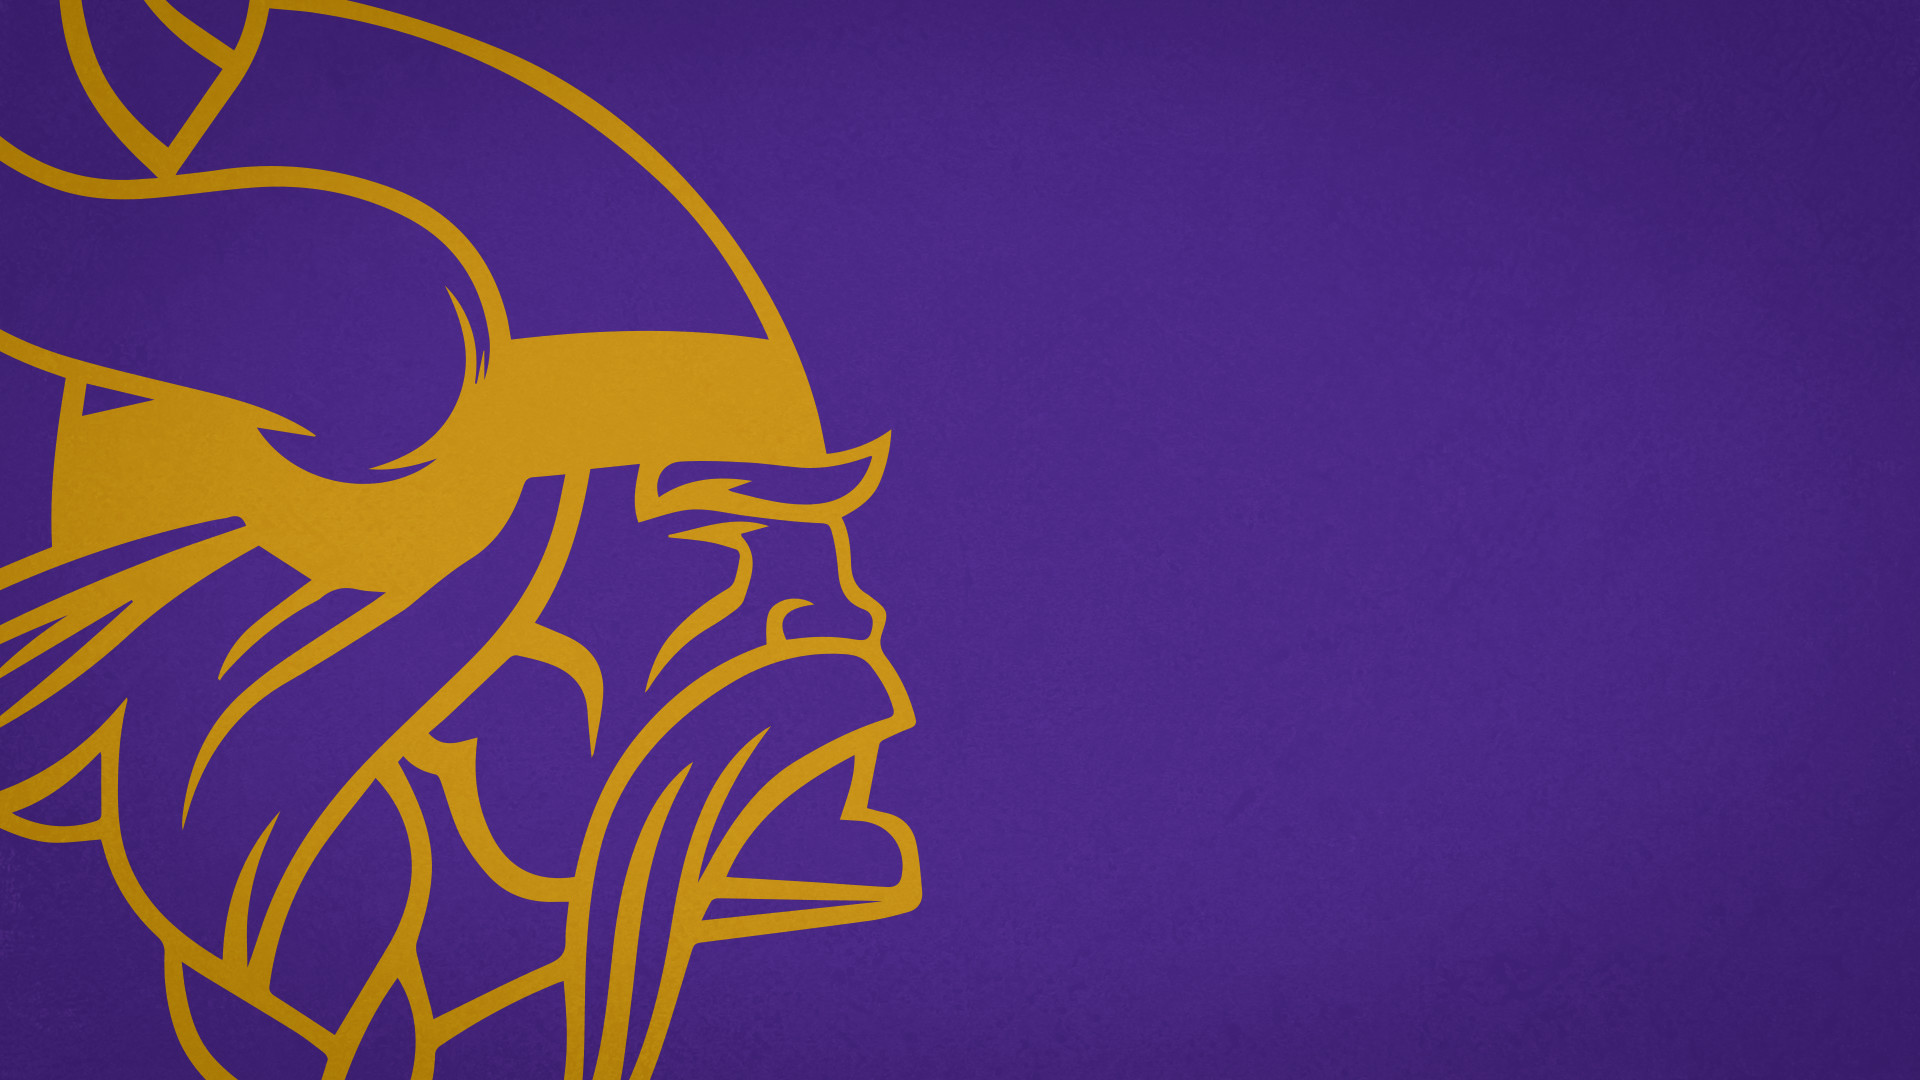 Minnesota Vikings Wallpapers PC iPhone Android 1920×1080